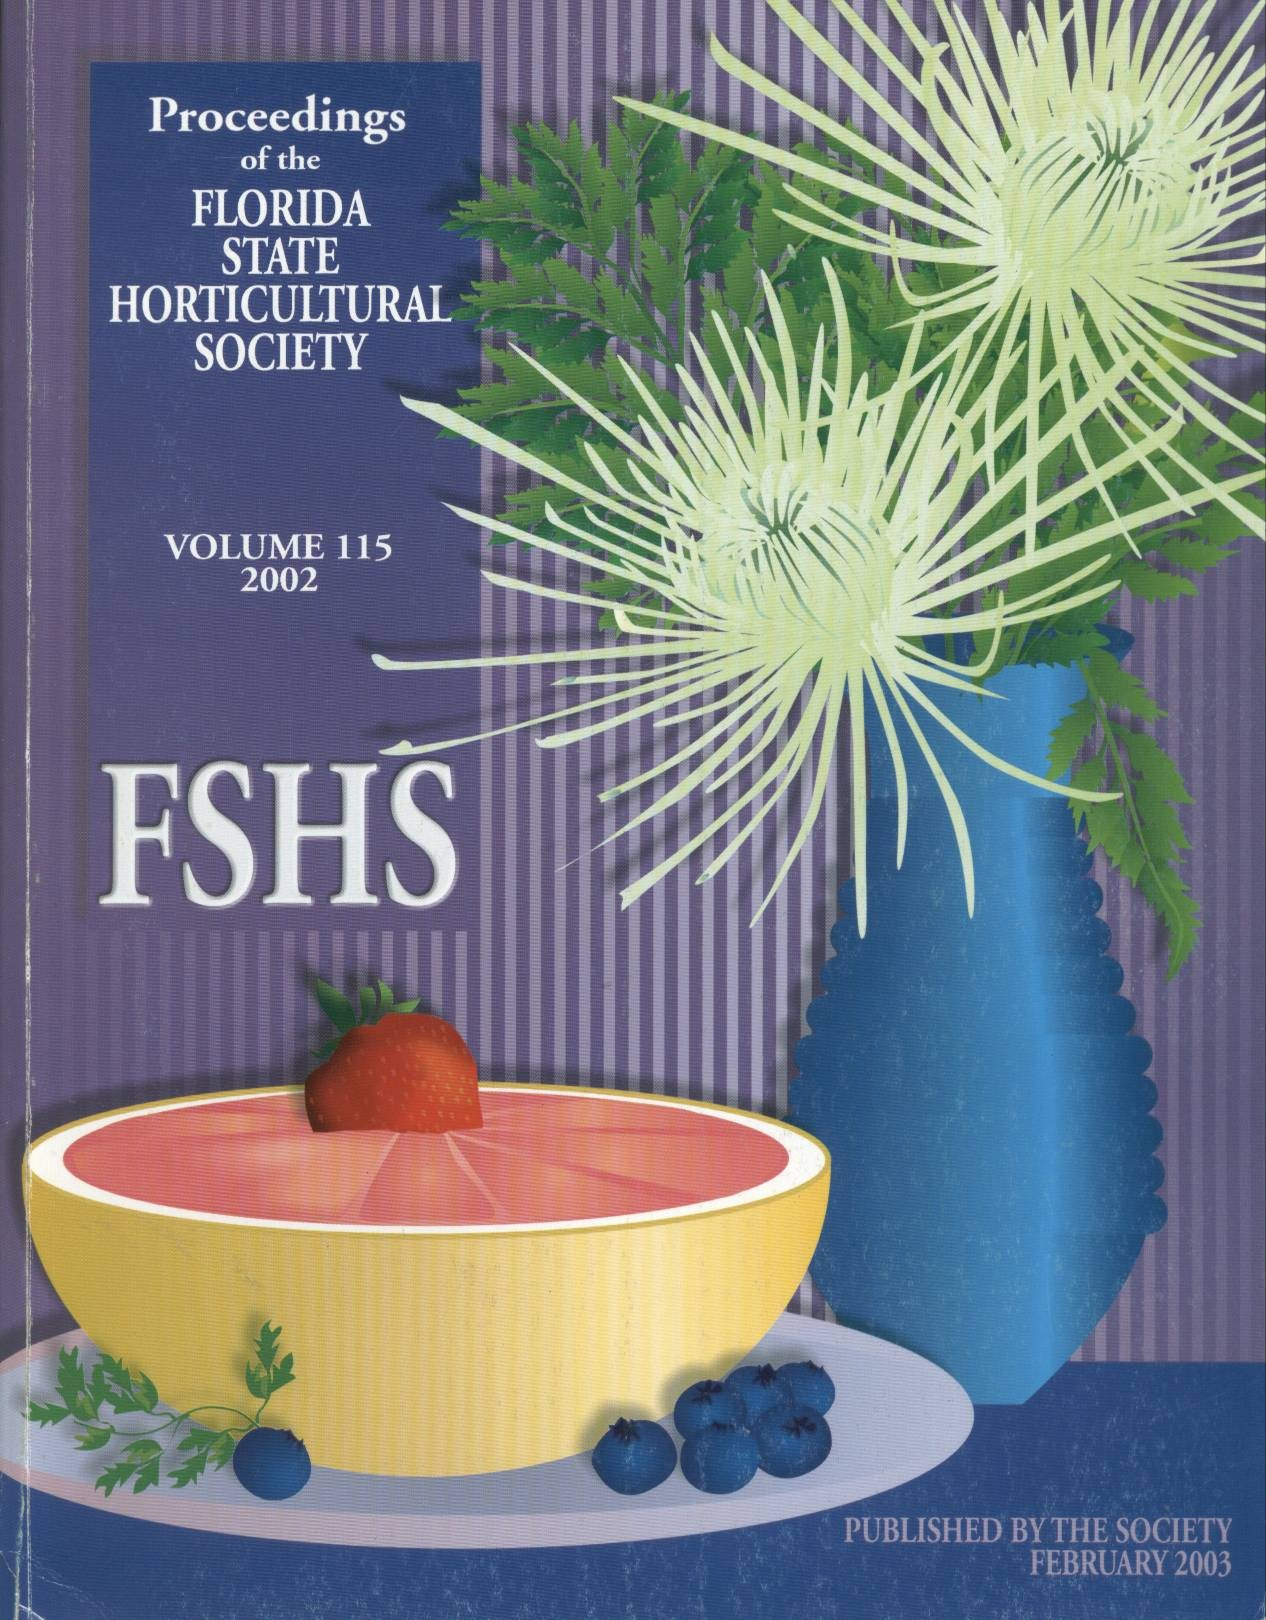 front cover of vol 115, 2002